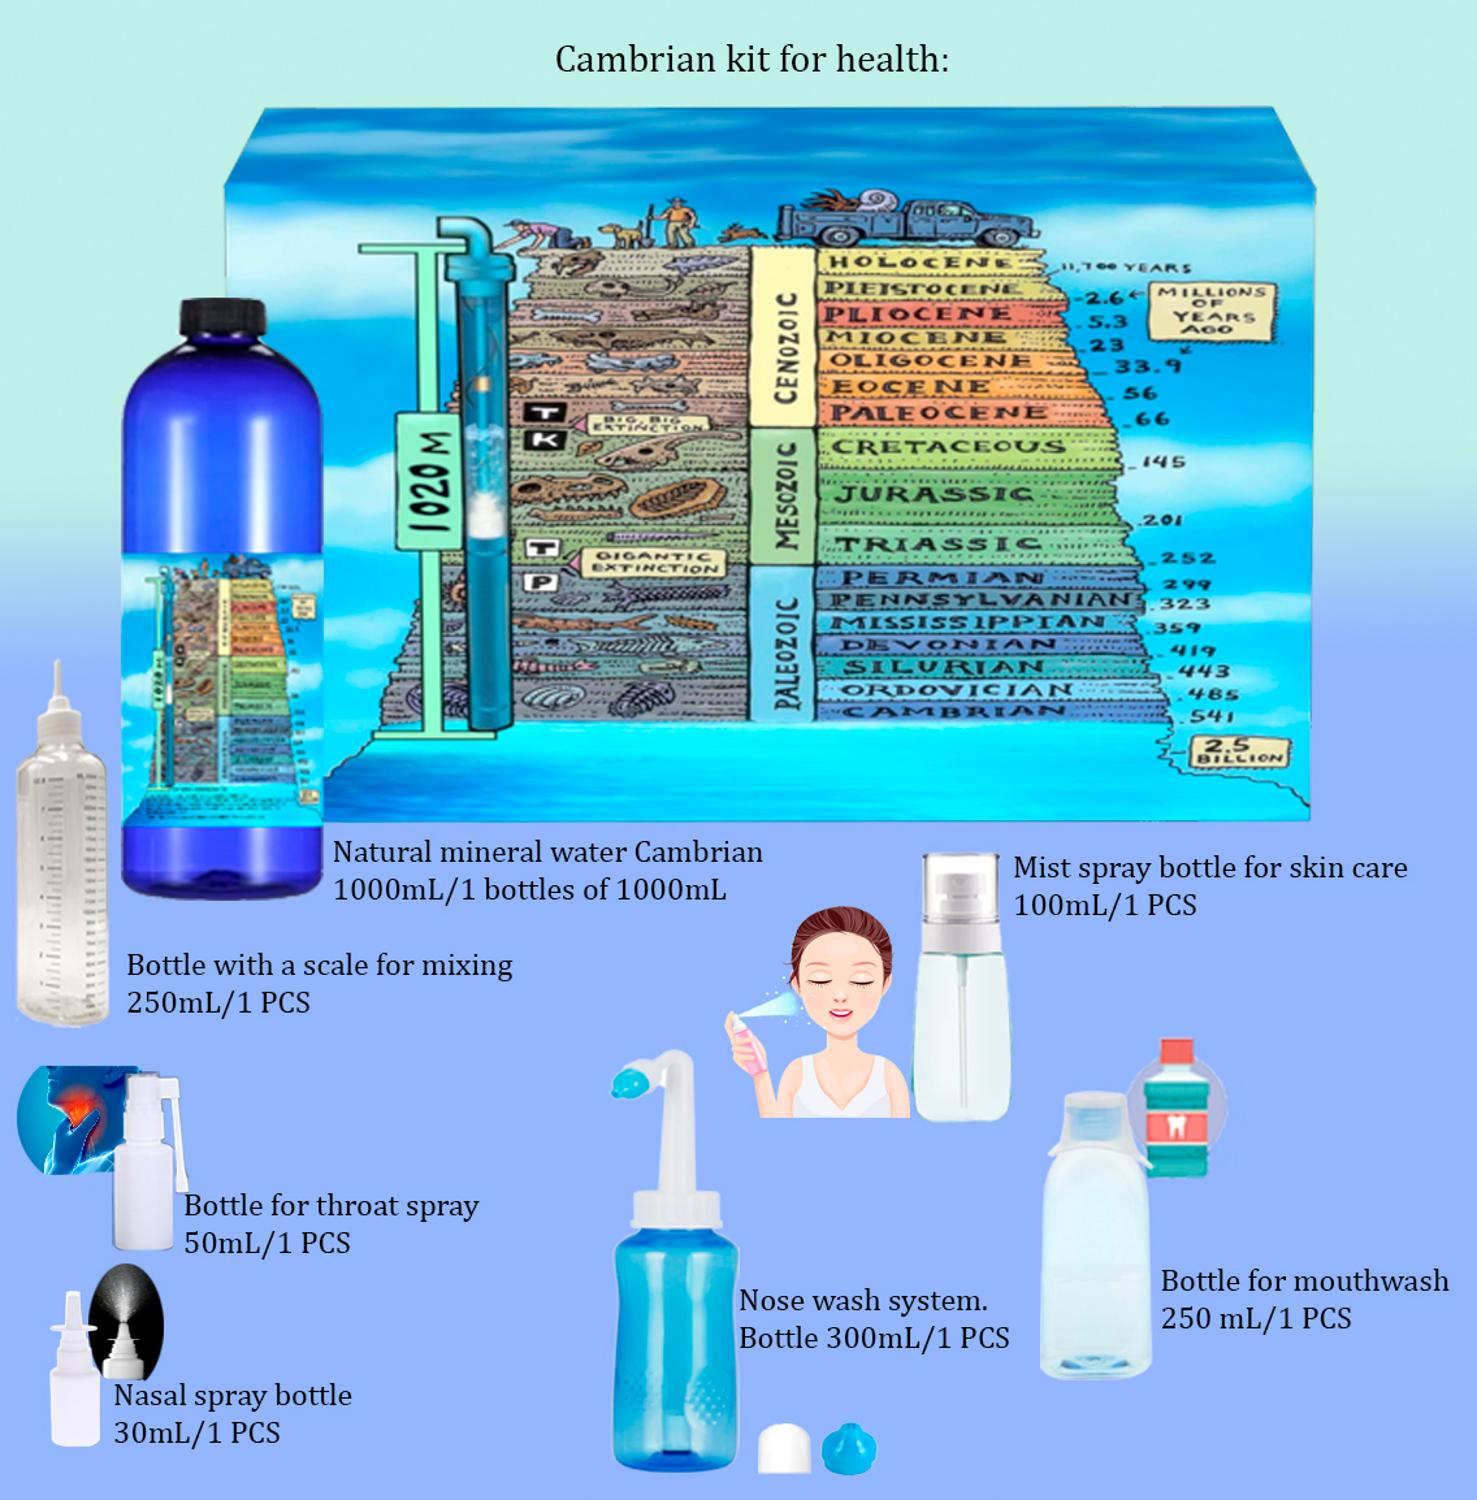 Remedy For Mouthwash,Nose Wash,for Throat,Spray Mist For Skin-Care,Cambrian Mineral Water,Liquid Salt,Mineral Care